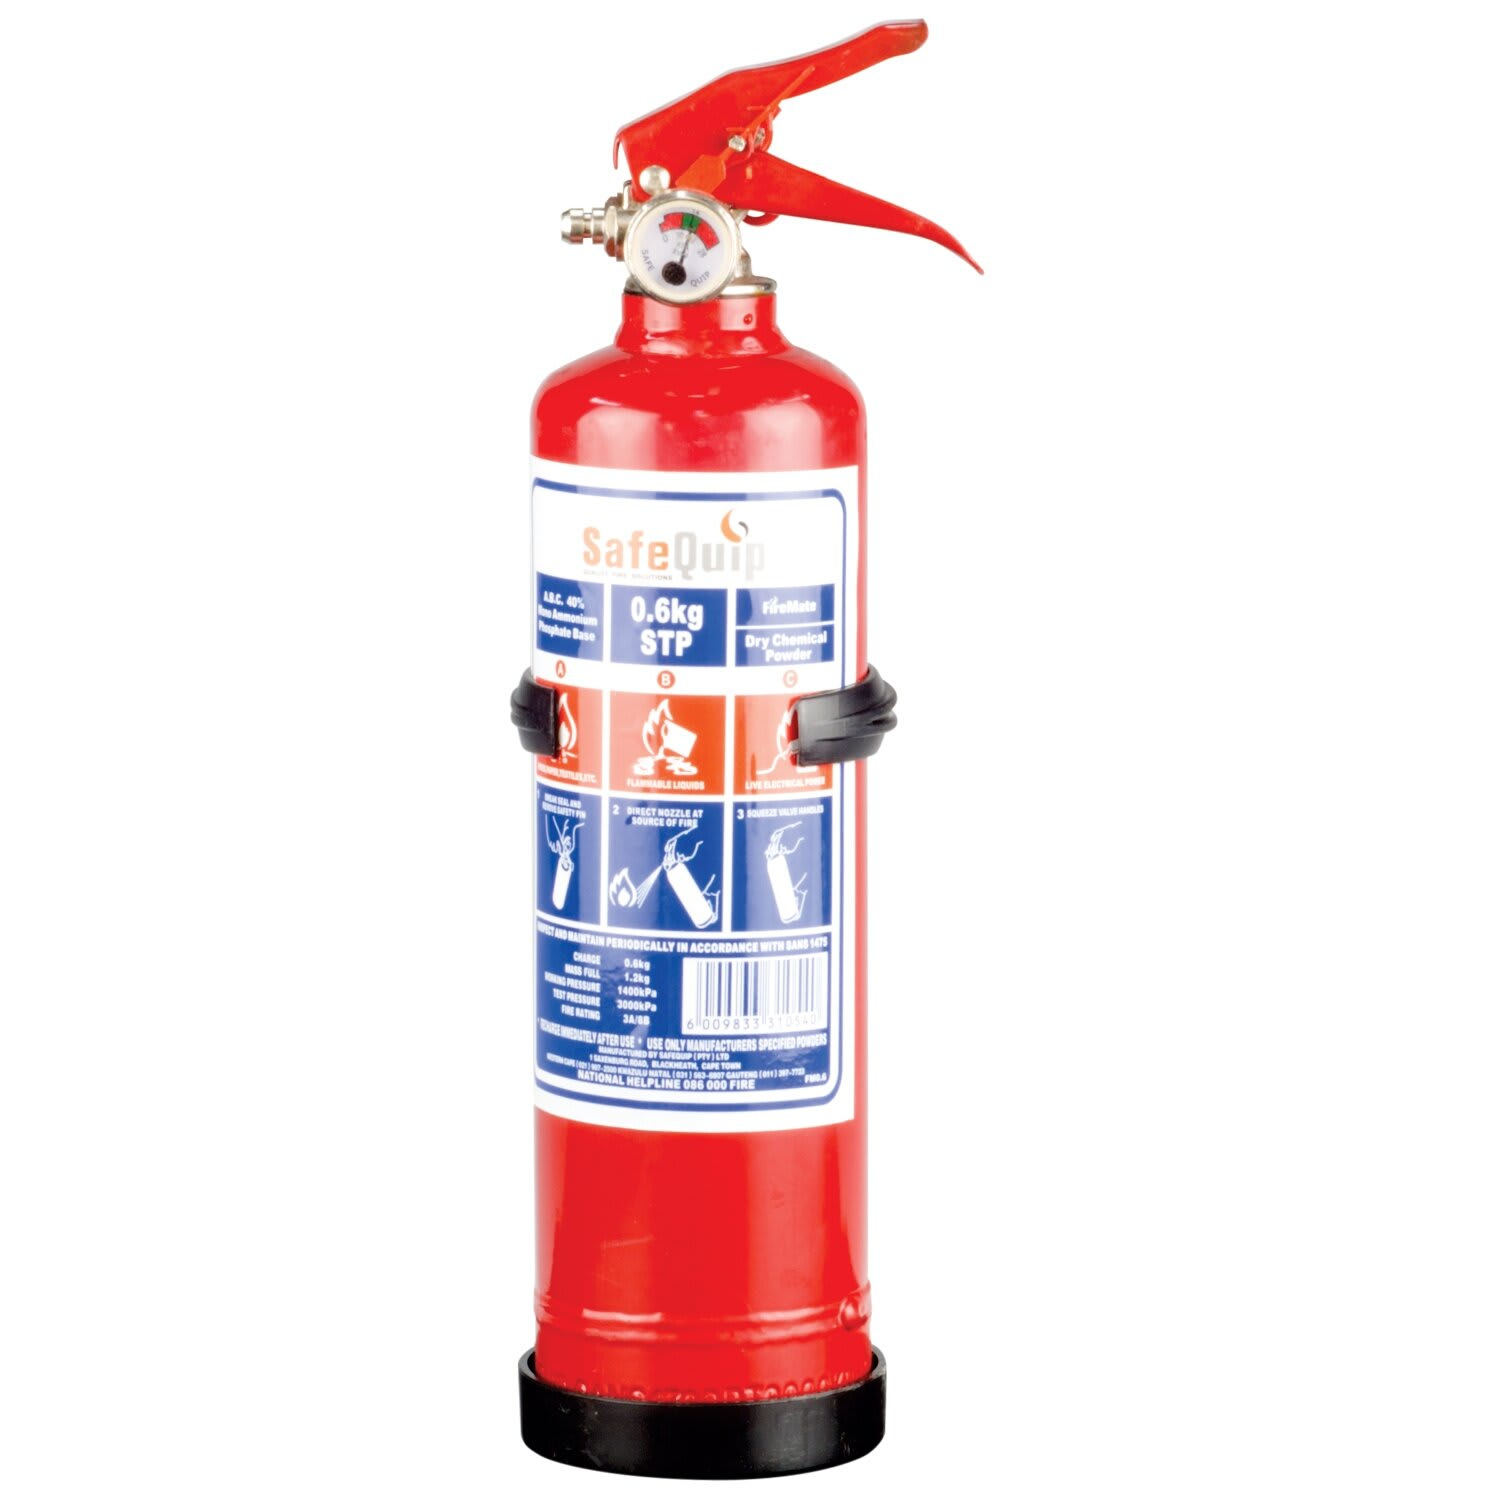 SafeQuip Fire Extinguisher 0.6Kg With Bracket